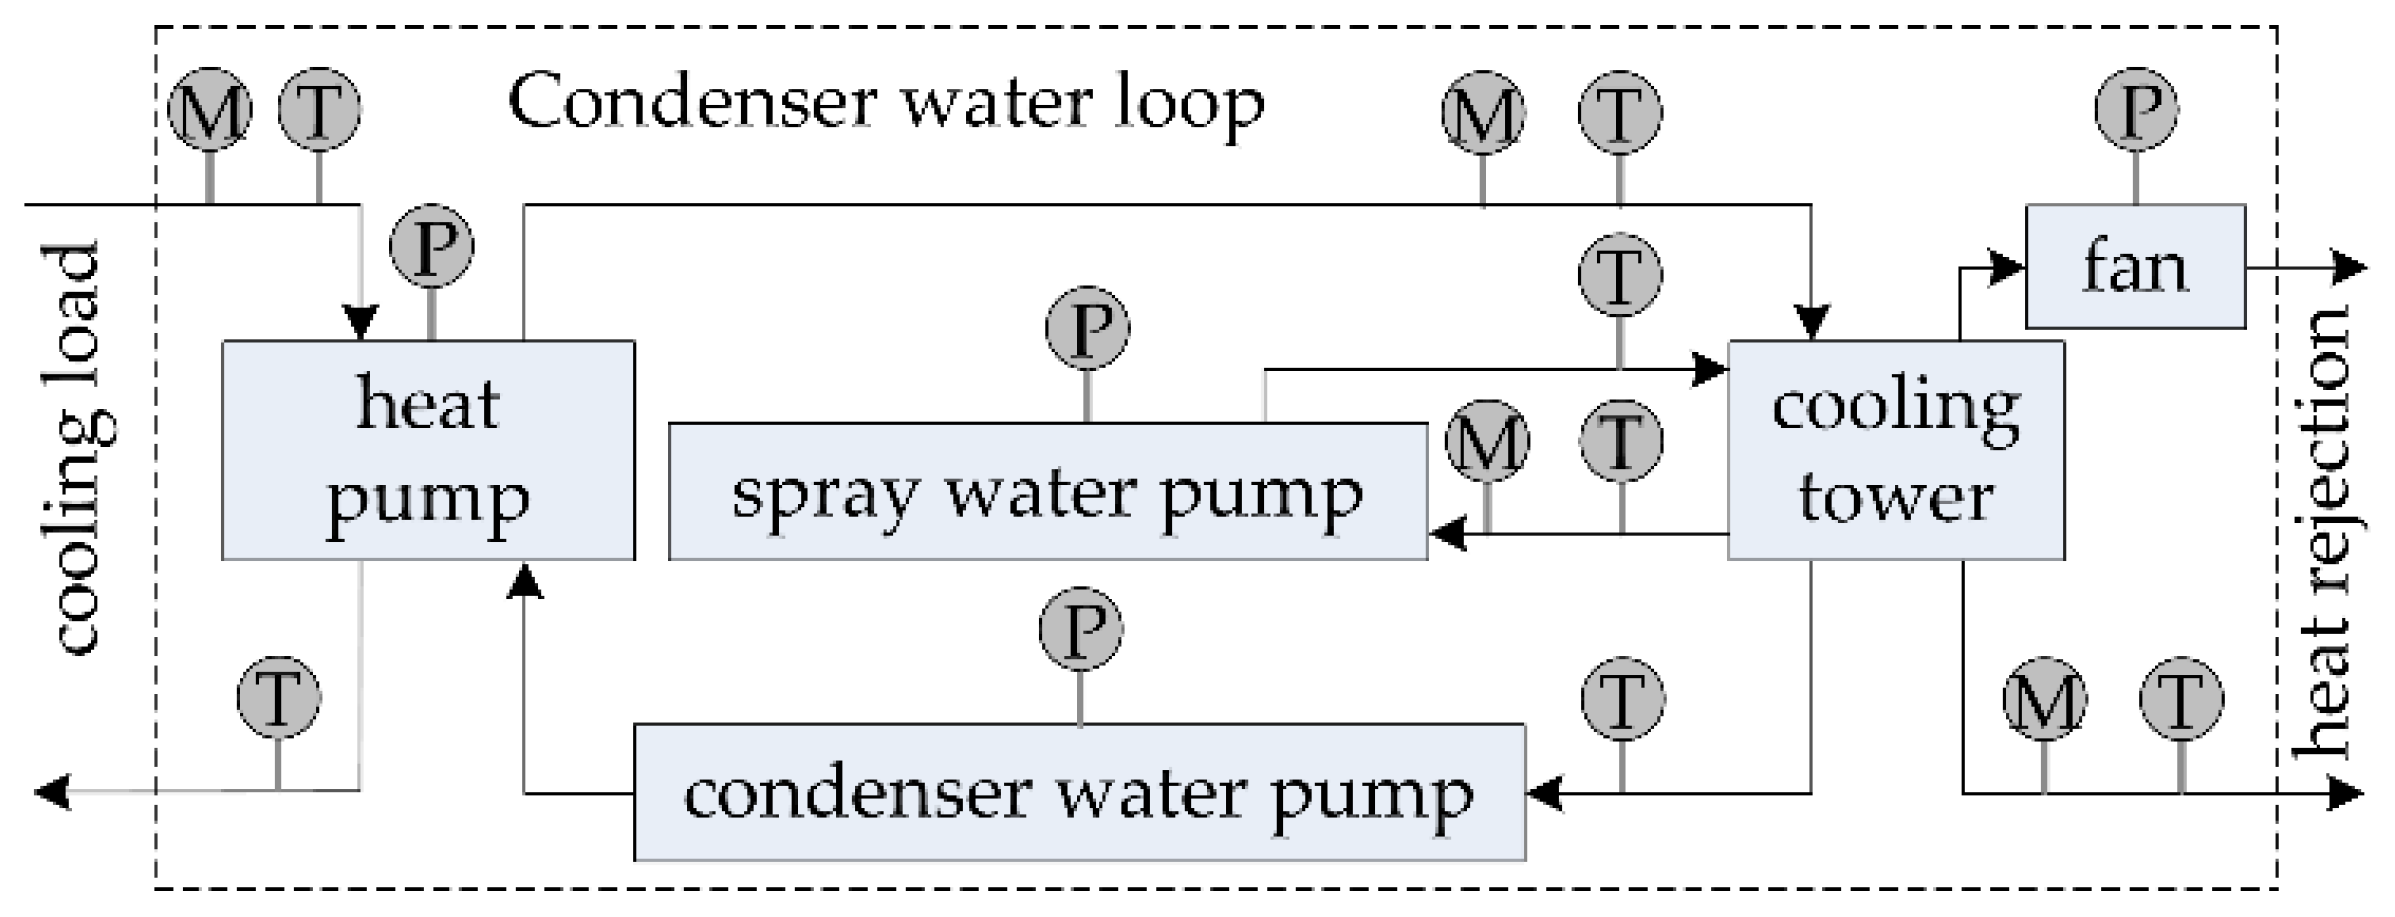 Spray Water Pump Schematic Electrical Drawing Wiring Diagram Air Energy Heat Energies Free Full Text Modeling And Optimization Of A Rh Mdpi Com Centrifical Ge